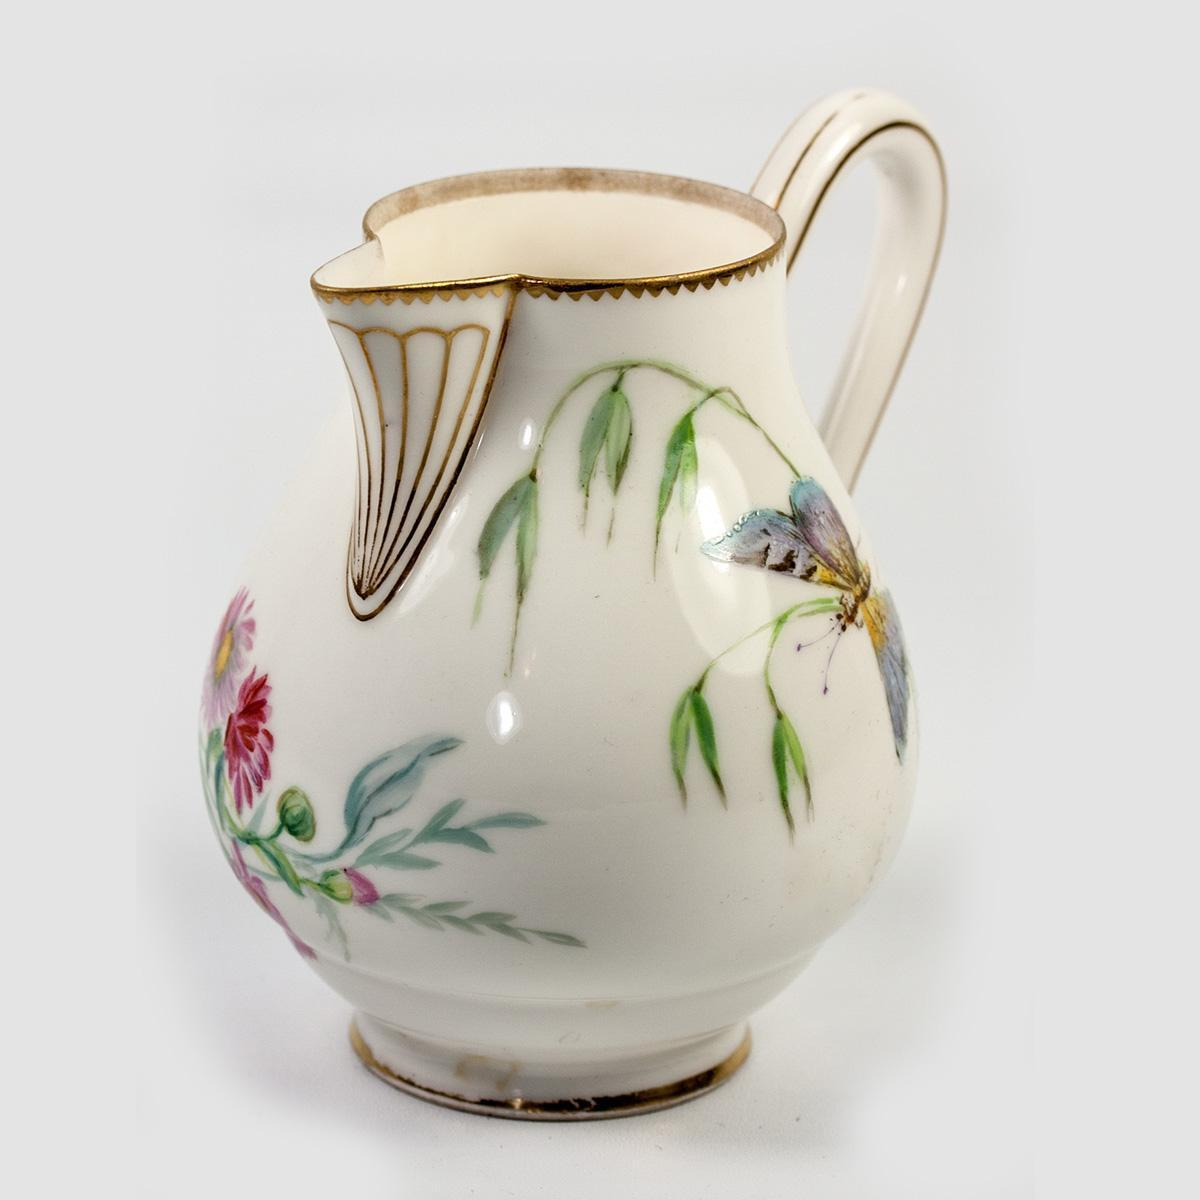 """Antique Sevres Hand Painted White Porcelain 4.25"""" Tall Cream Pitcher c.1875 Marks"""